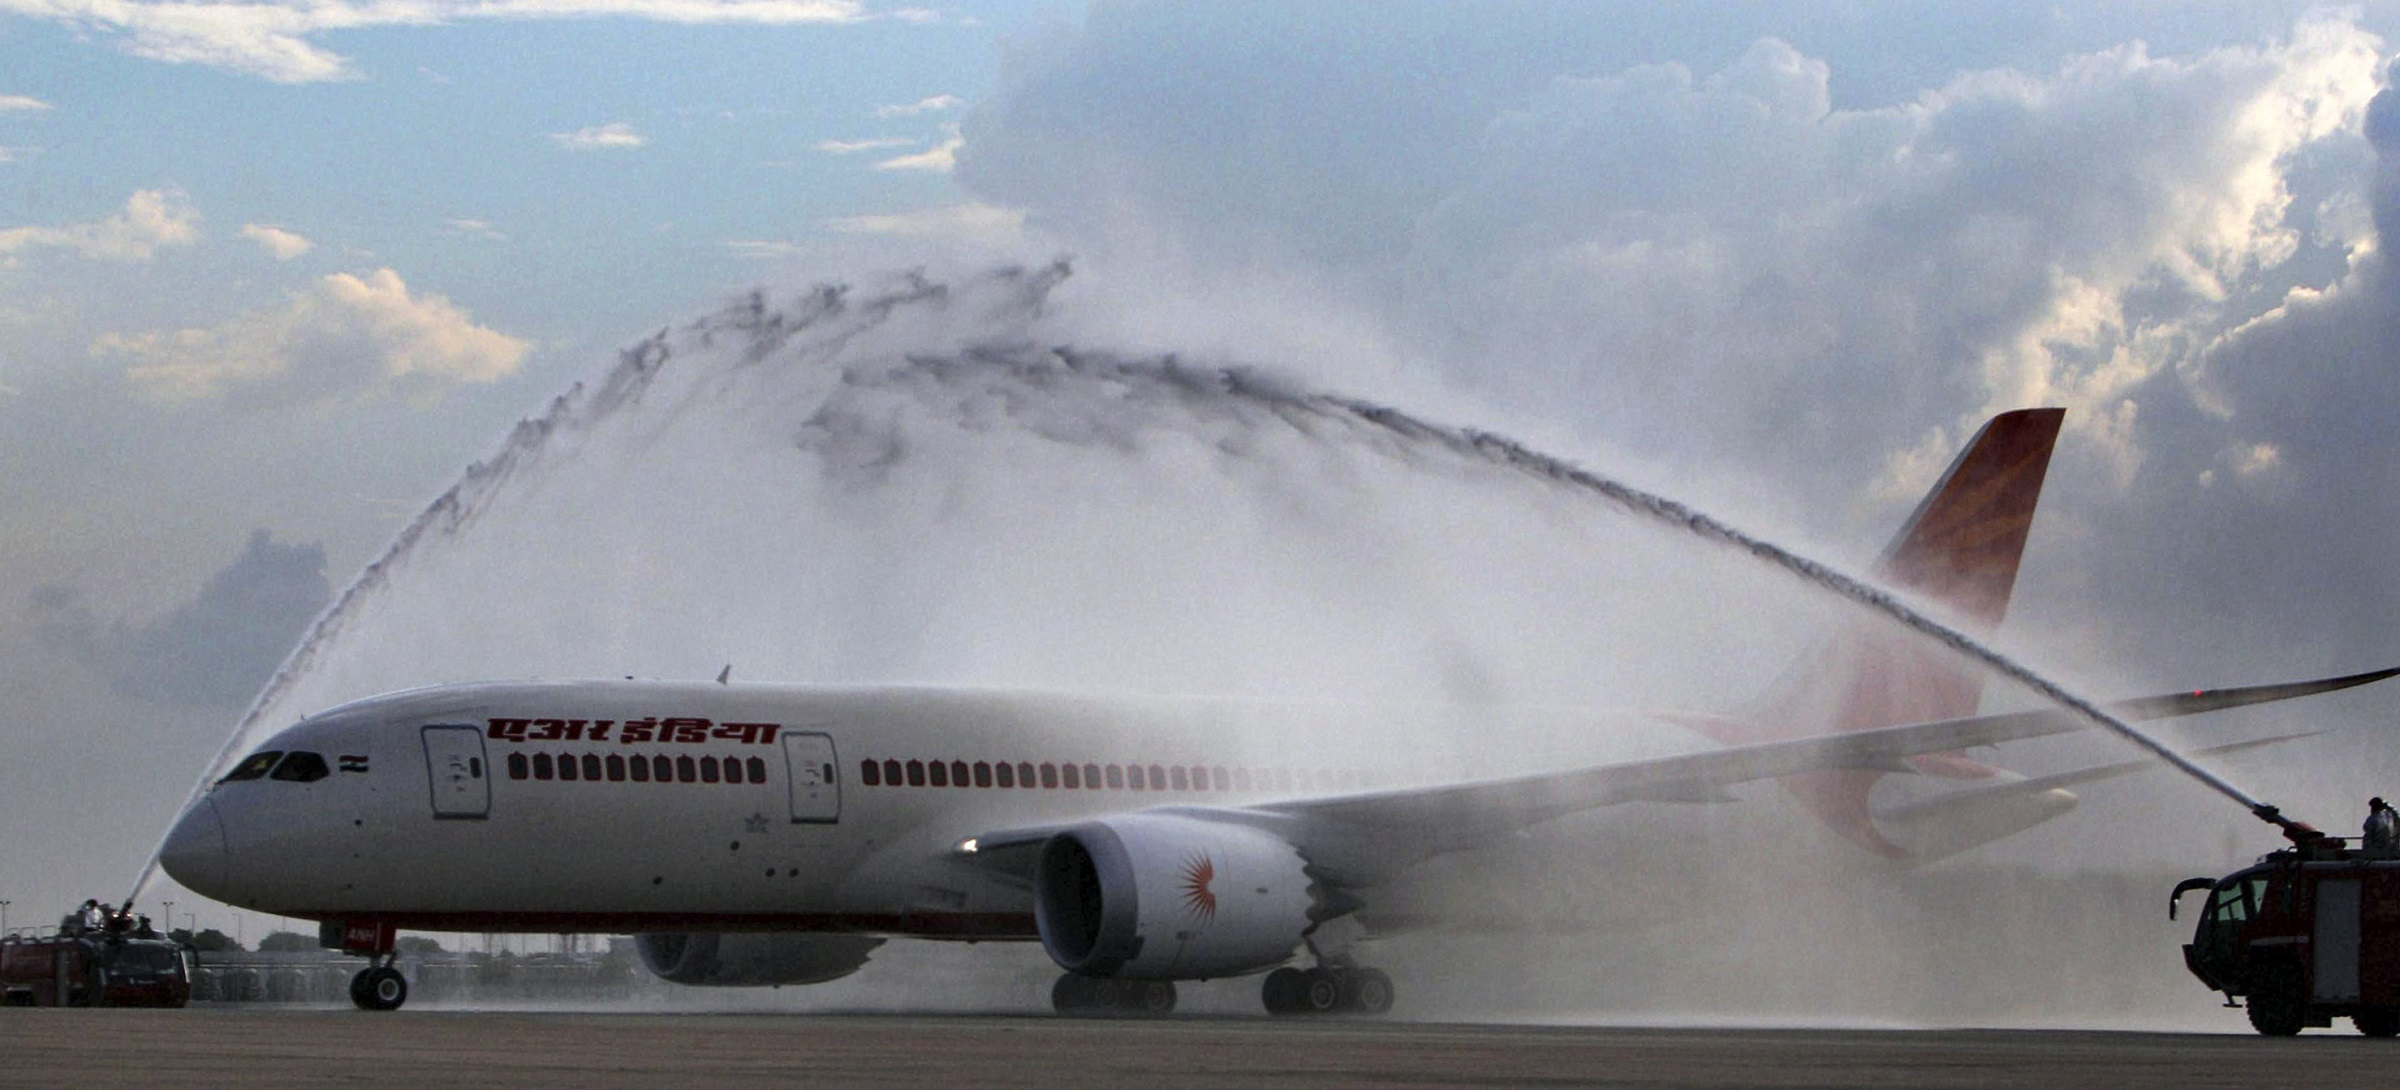 A Boeing 787 Dreamliner passenger plane receives a water canon salute upon arrival at the Indira Gandhi International Airport in New Delhi, India, Saturday, Sept. 8, 2012. Air India has taken delivery of its first Boeing 787 from the company. It is the fifth airline worldwide to take delivery of a 787 and has 26 more on order. (AP Photo)